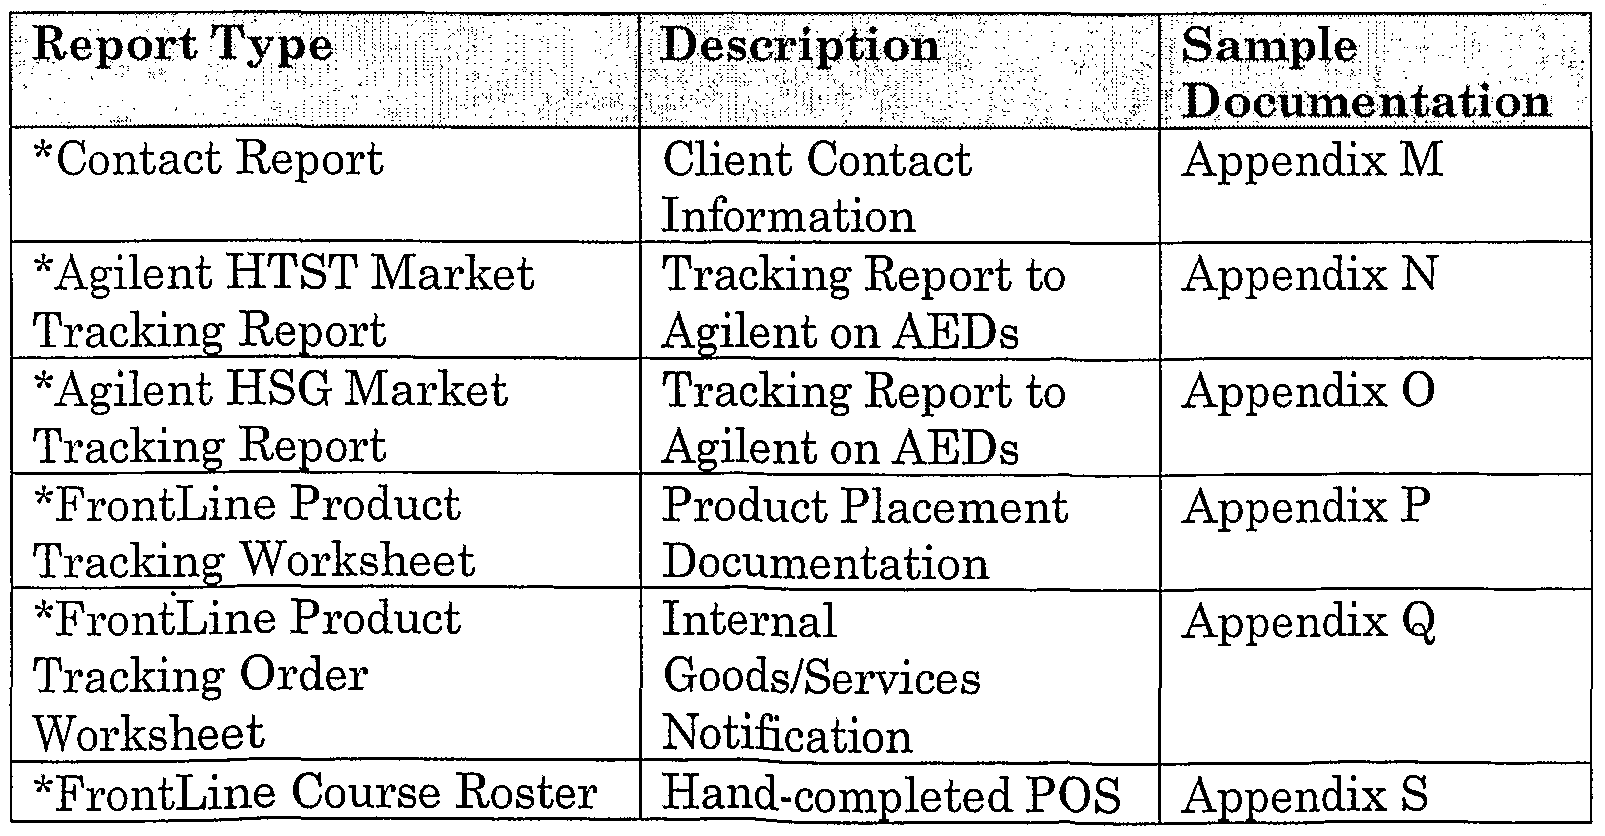 Non Vat Registered Invoice Word Patent Woa  System And Method For Monitoring And  Invoice Database Software Excel with Customer Receipt Word Patent Woa  System And Method For Monitoring And Ensuring  Proper Life Safety Equipment   Google Patents Invoices In Quickbooks